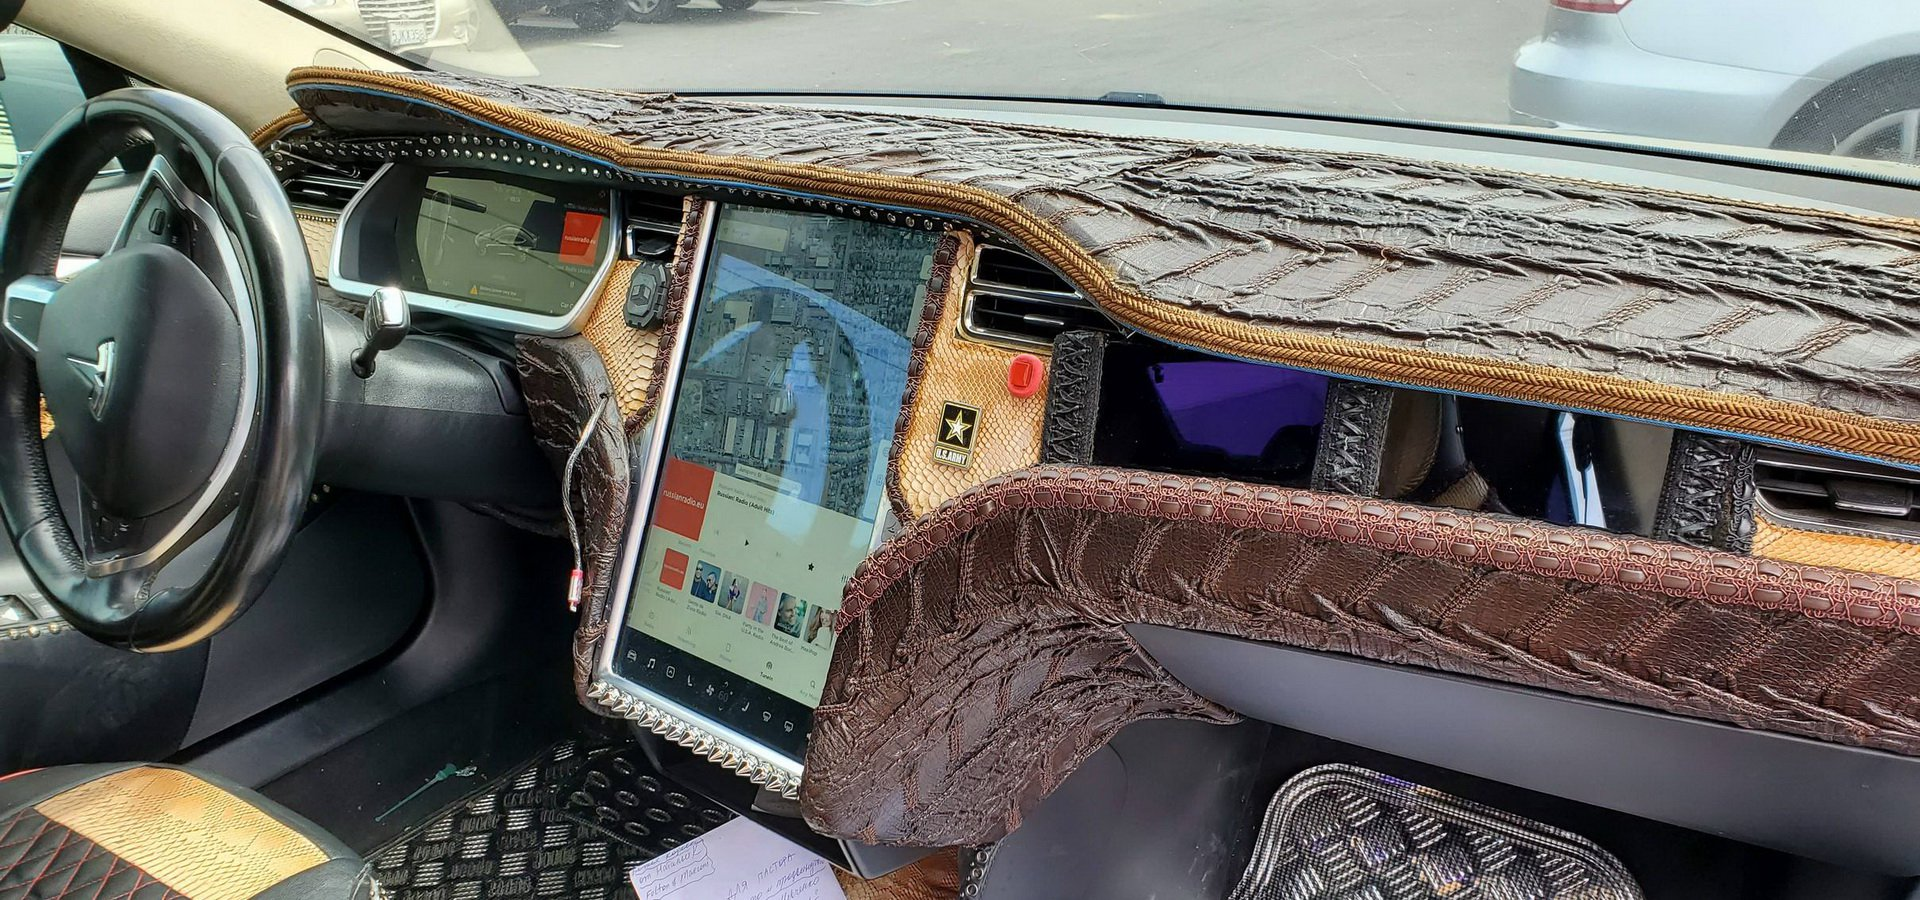 This is a Tesla Model S that we have here. Apparently, its owner felt like wrapping its entire cabin in all imaginable kinds of gaudy-looking, eye-watering crocodile leather